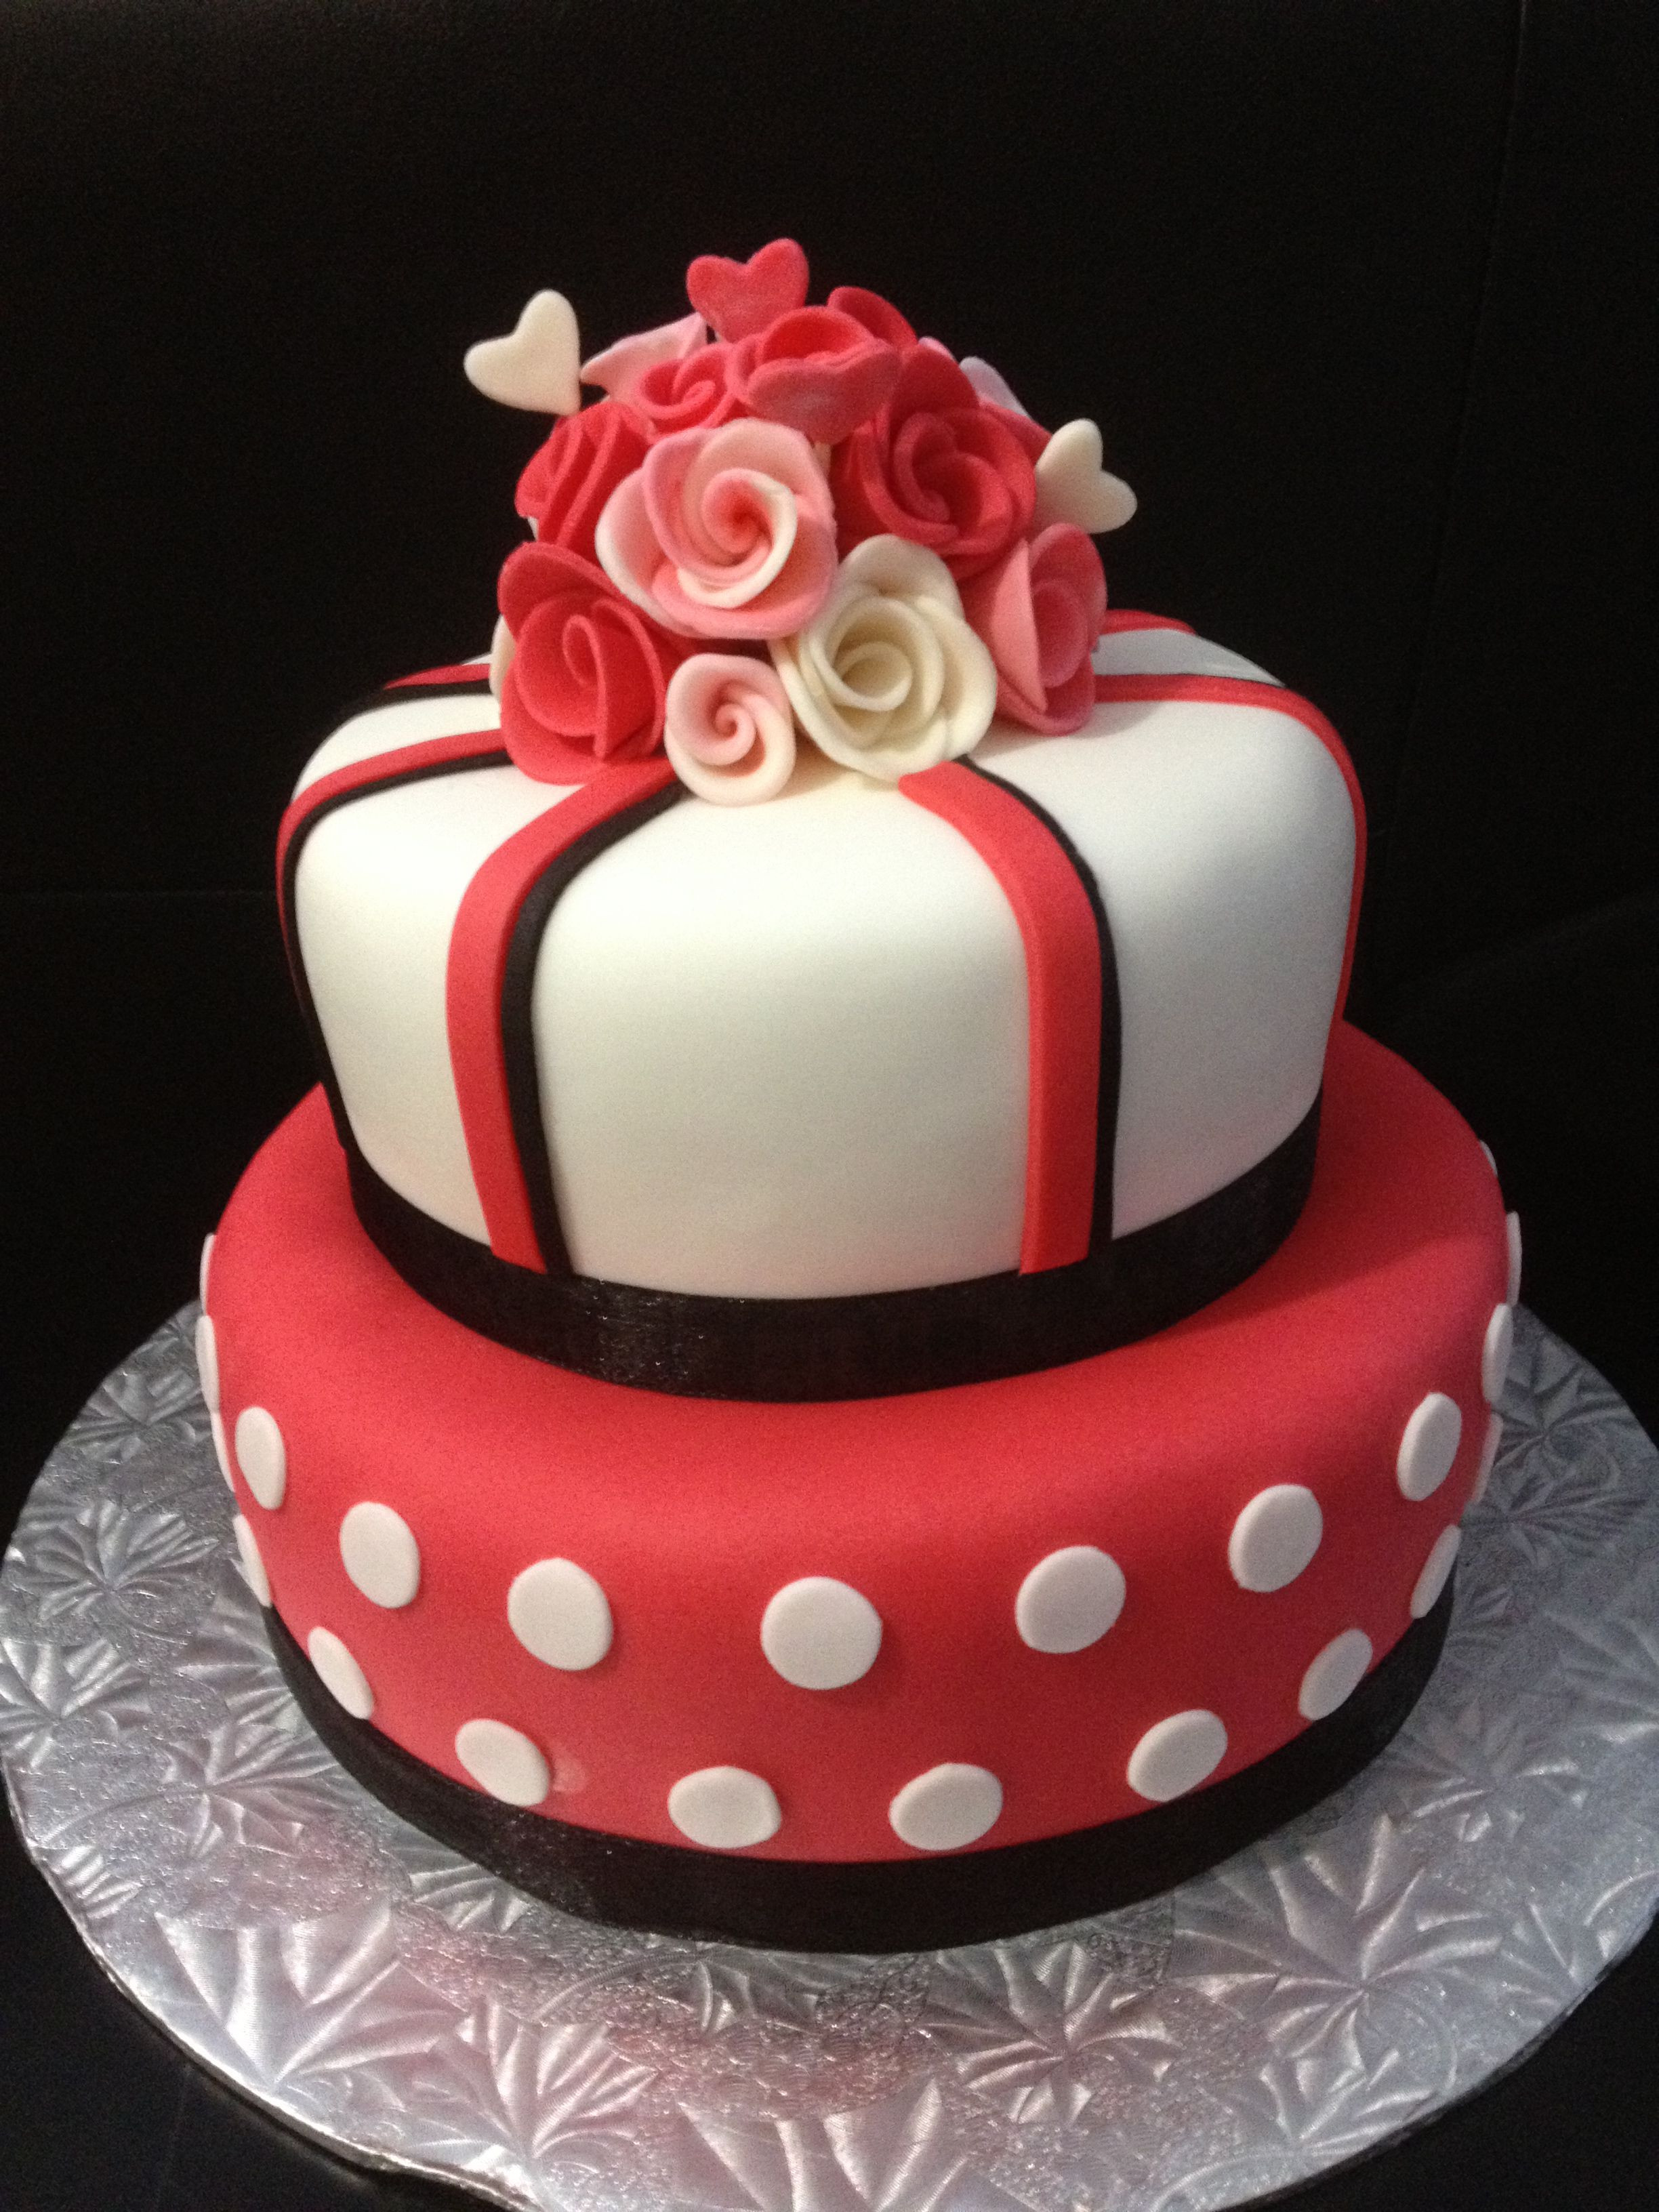 Best ideas about Valentine Birthday Cake . Save or Pin Red white and black fondant birthday cake for my sisters Now.